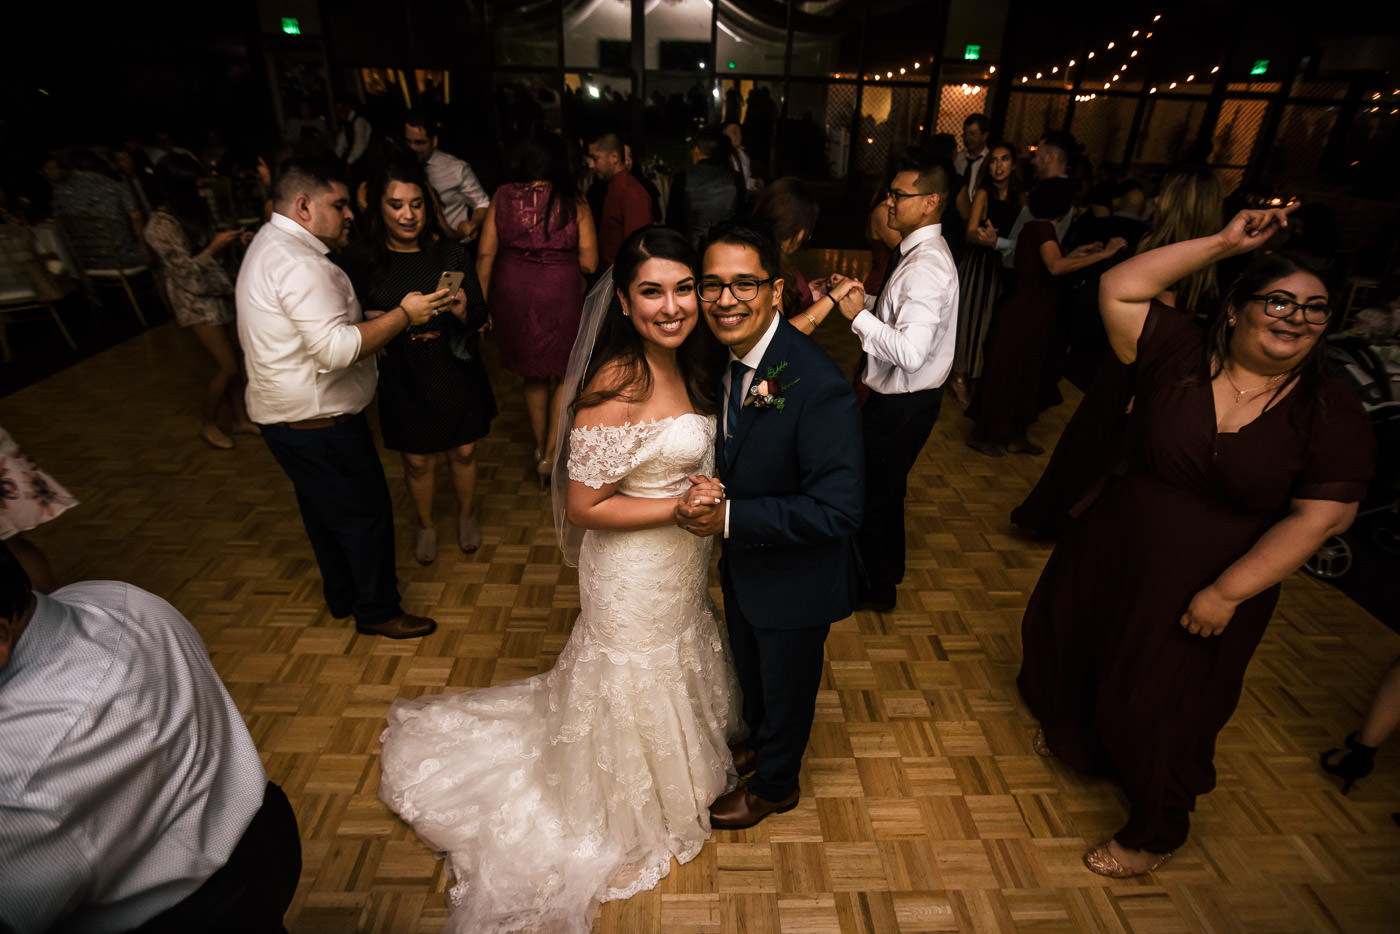 Couple smiles as they hit the dance floor with their guests at the reception.